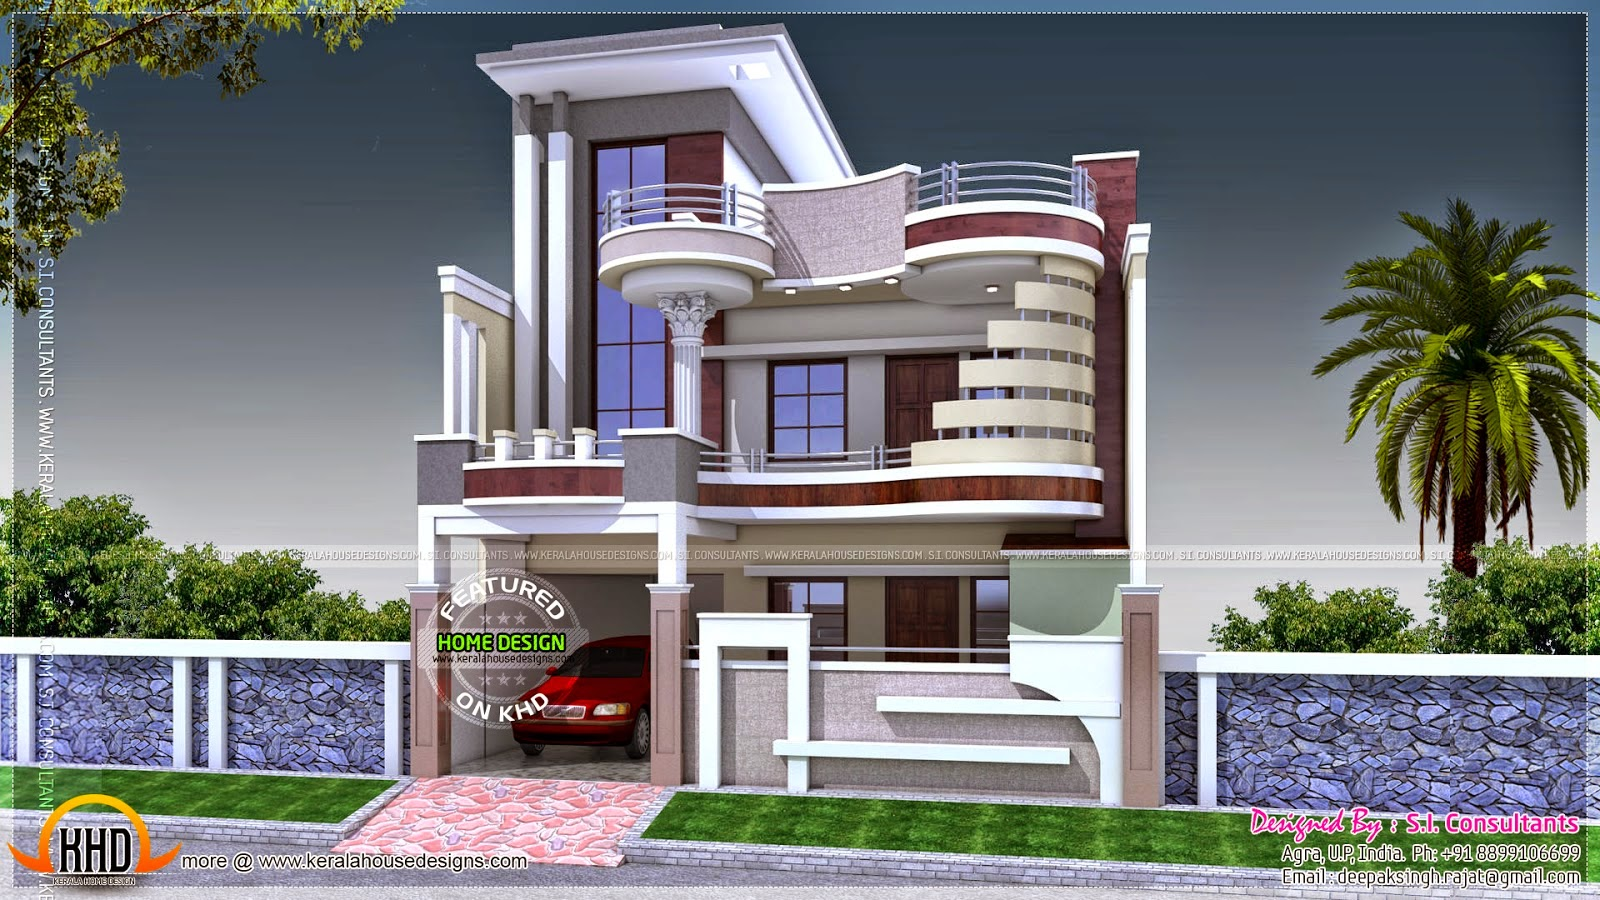 Tropicalizer indian house design Indian home design